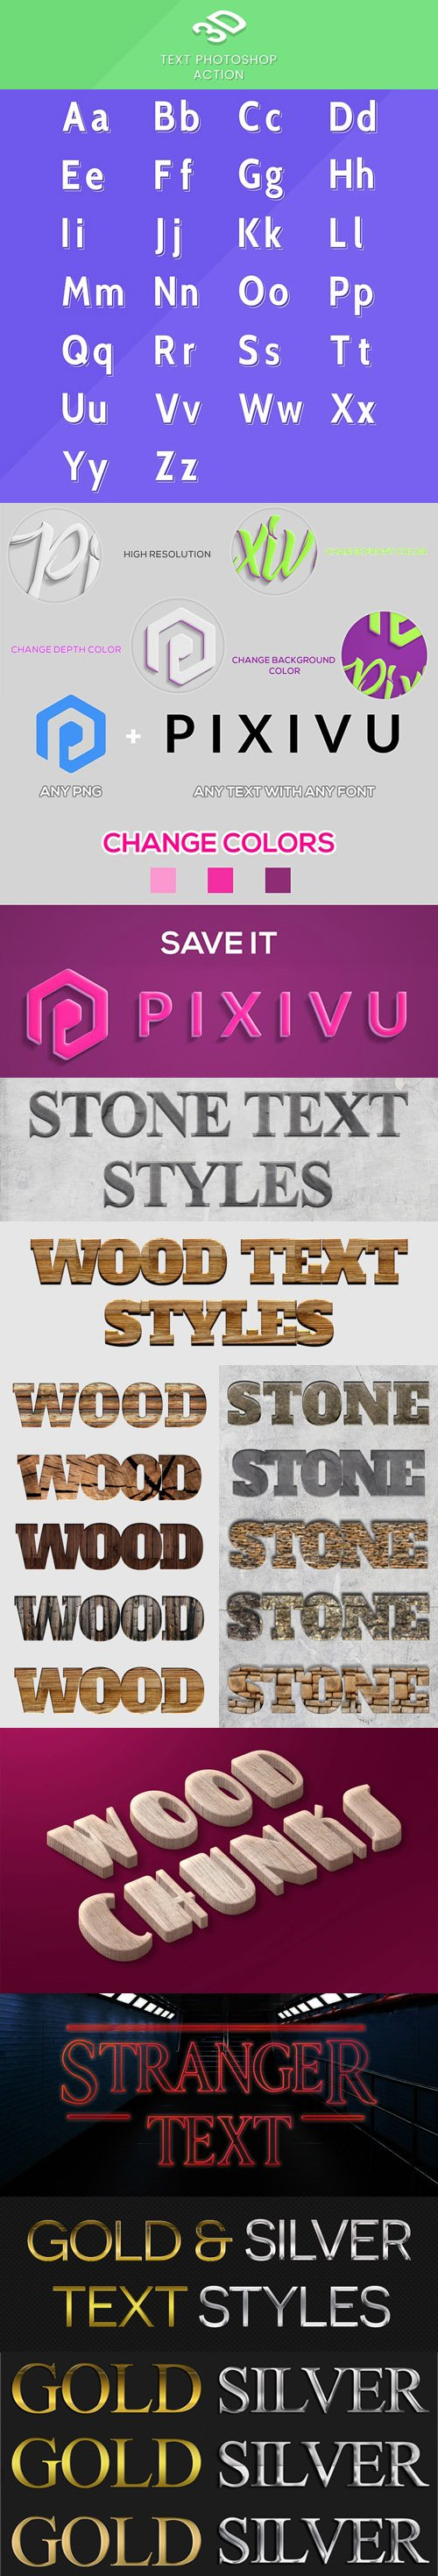 7 Text Effects & Styles Collection for Photoshop